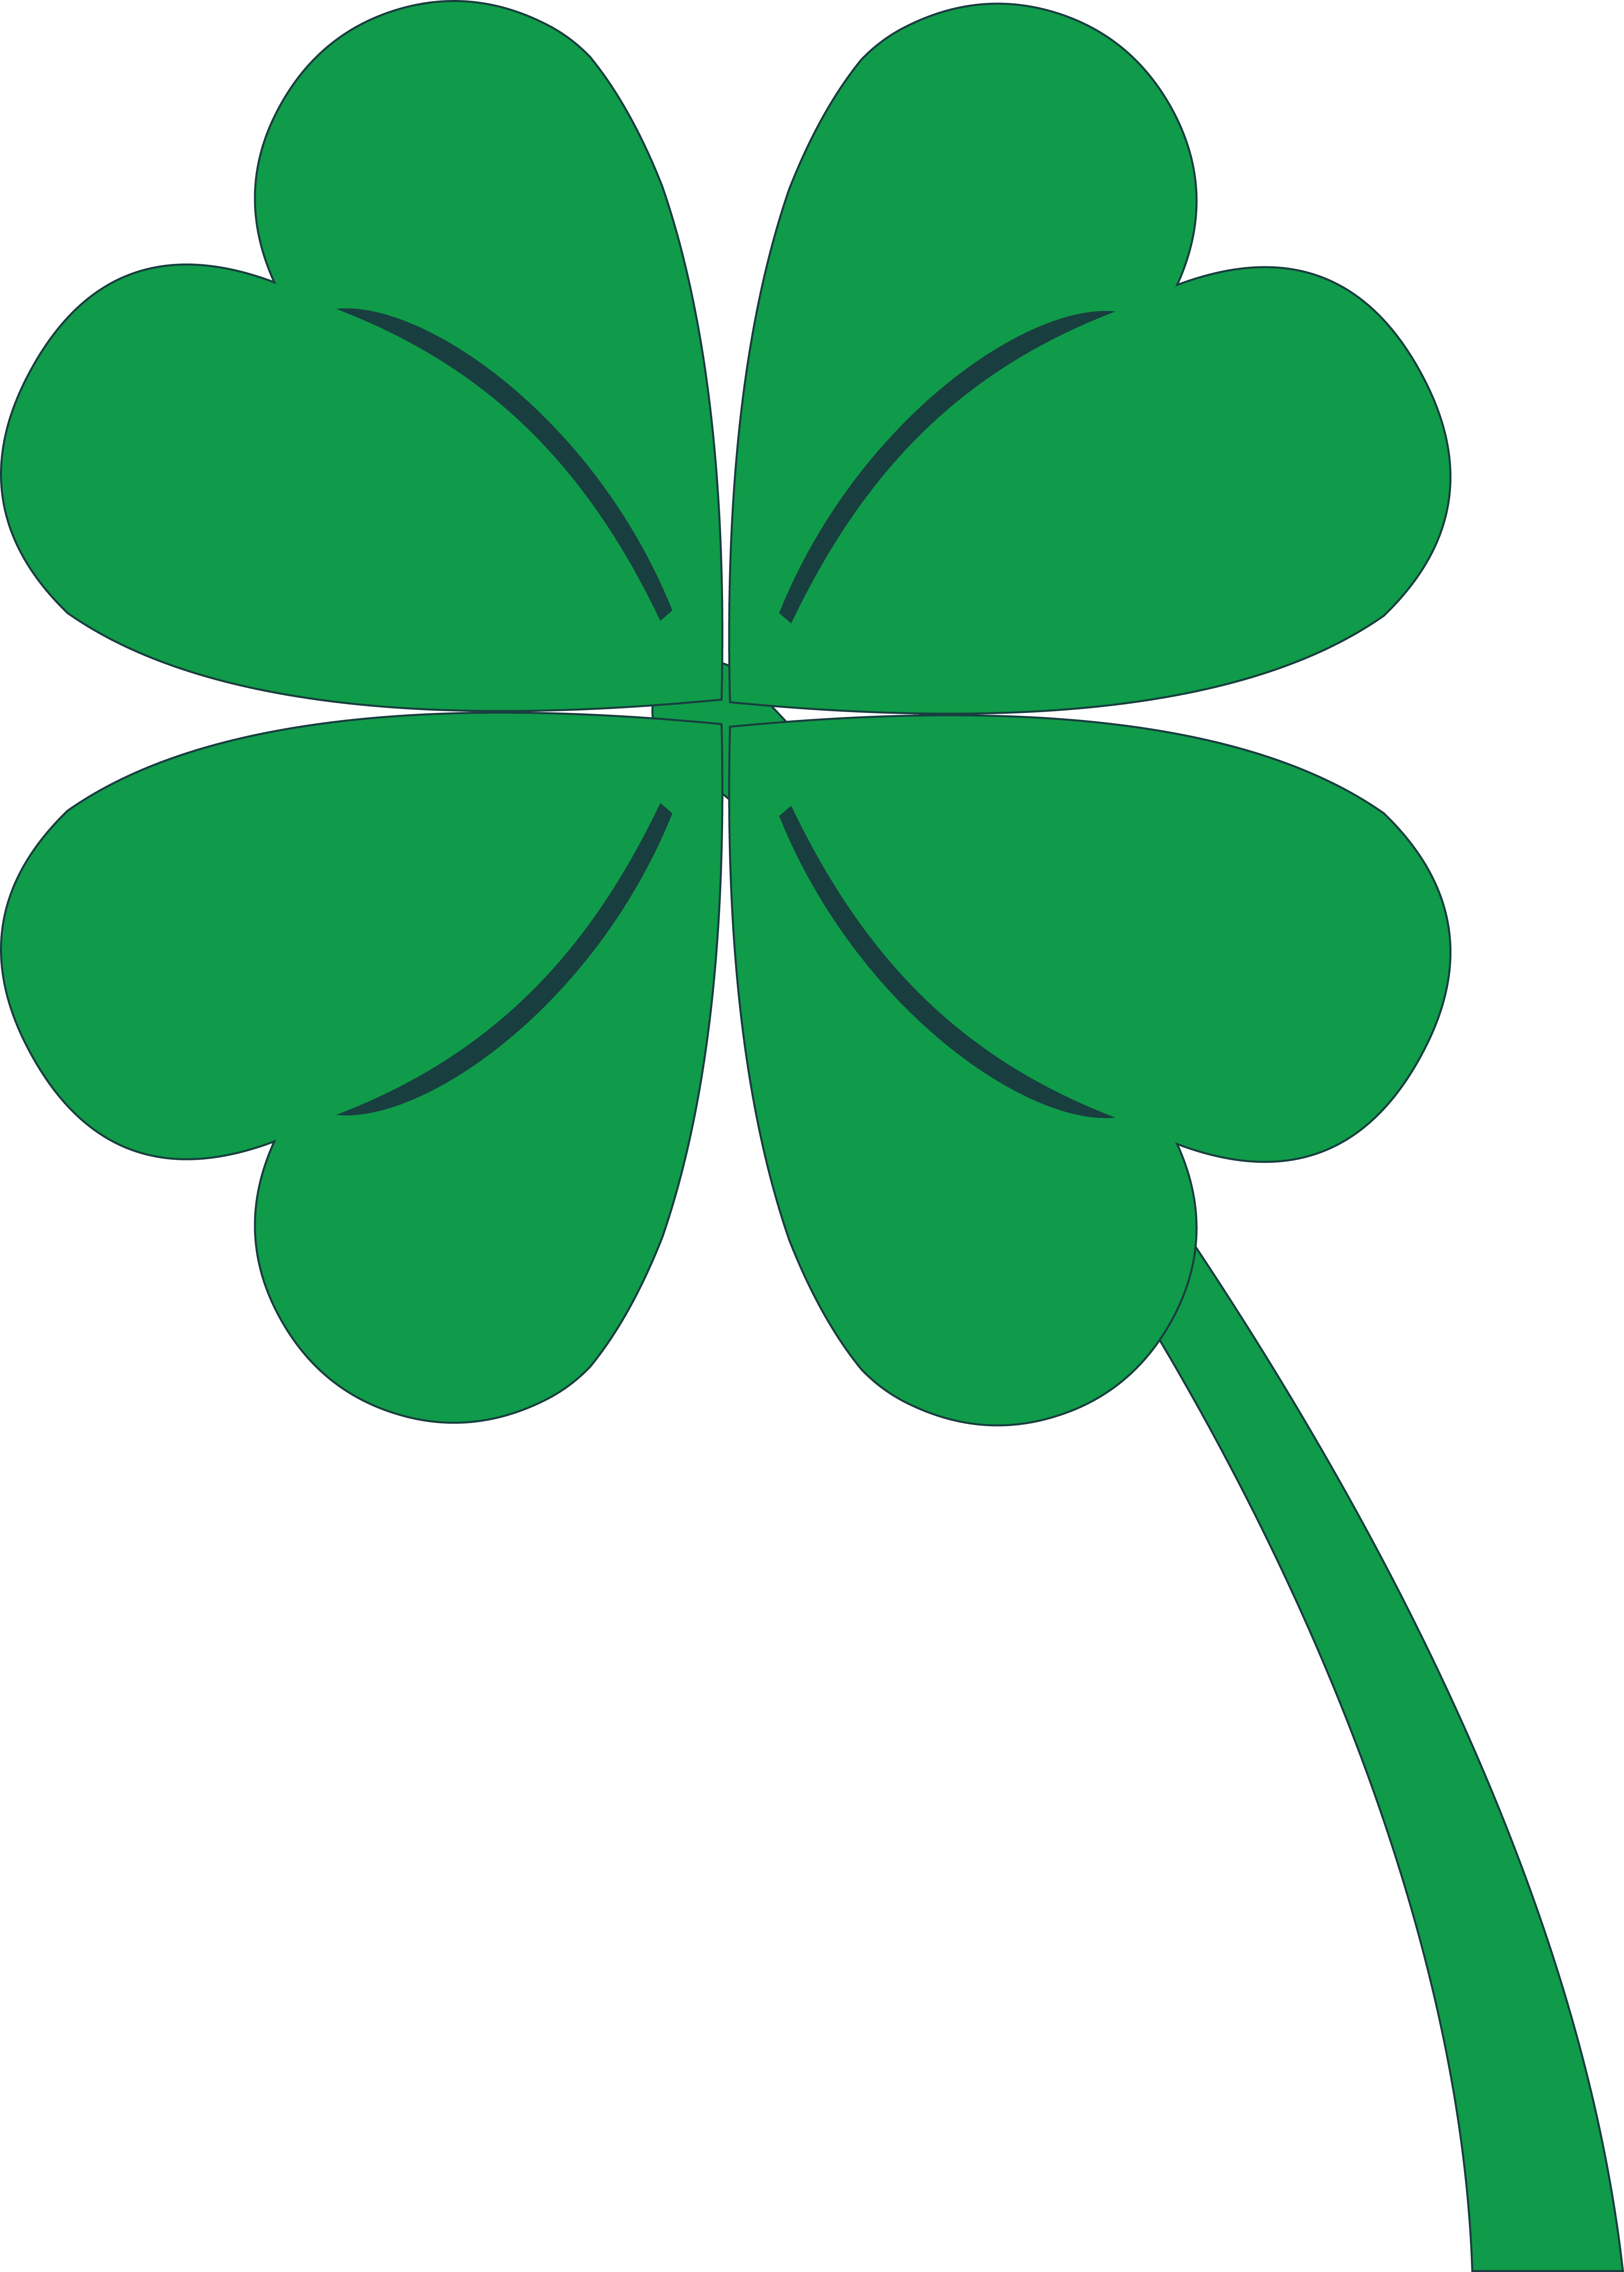 3 Leaf Clover Png Clipart Black And Whit #53693.